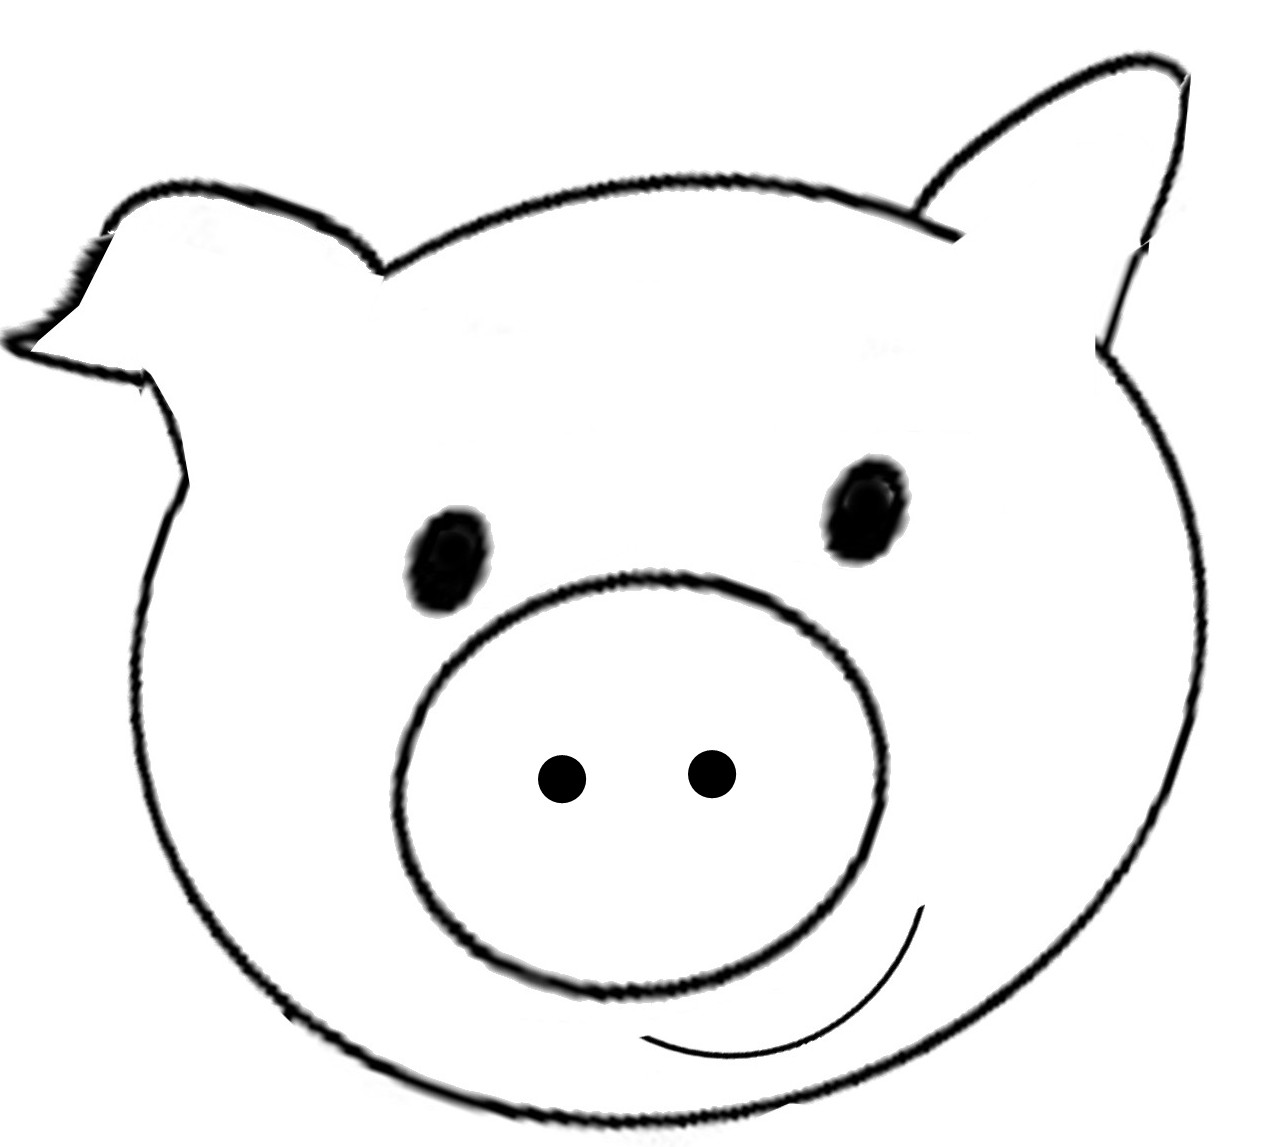 Pig black and white. Pigs clipart template